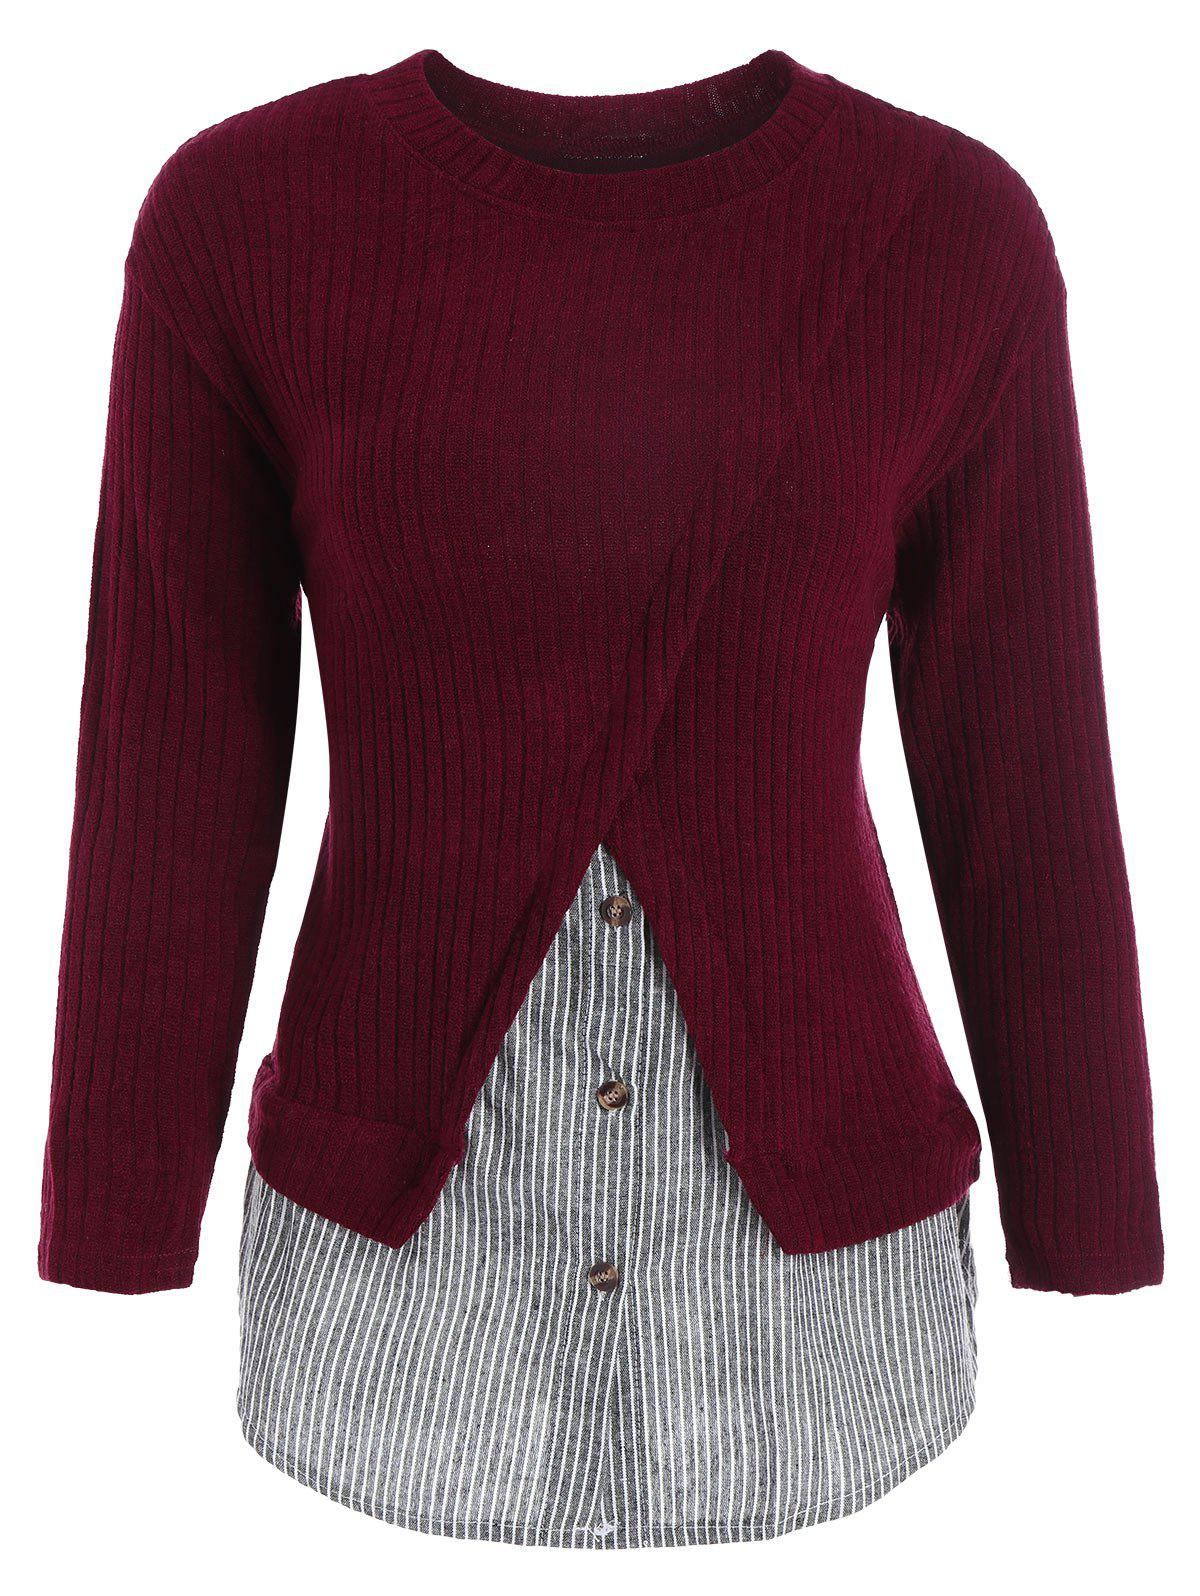 Stripe Panel Overlay Plus Size Ribbed SweaterWOMEN<br><br>Size: 5XL; Color: WINE RED; Type: Pullovers; Material: Polyester; Sleeve Length: Full; Collar: Crew Neck; Style: Casual; Season: Fall,Winter; Pattern Type: Striped; Weight: 0.3200kg; Package Contents: 1 x Sweater;